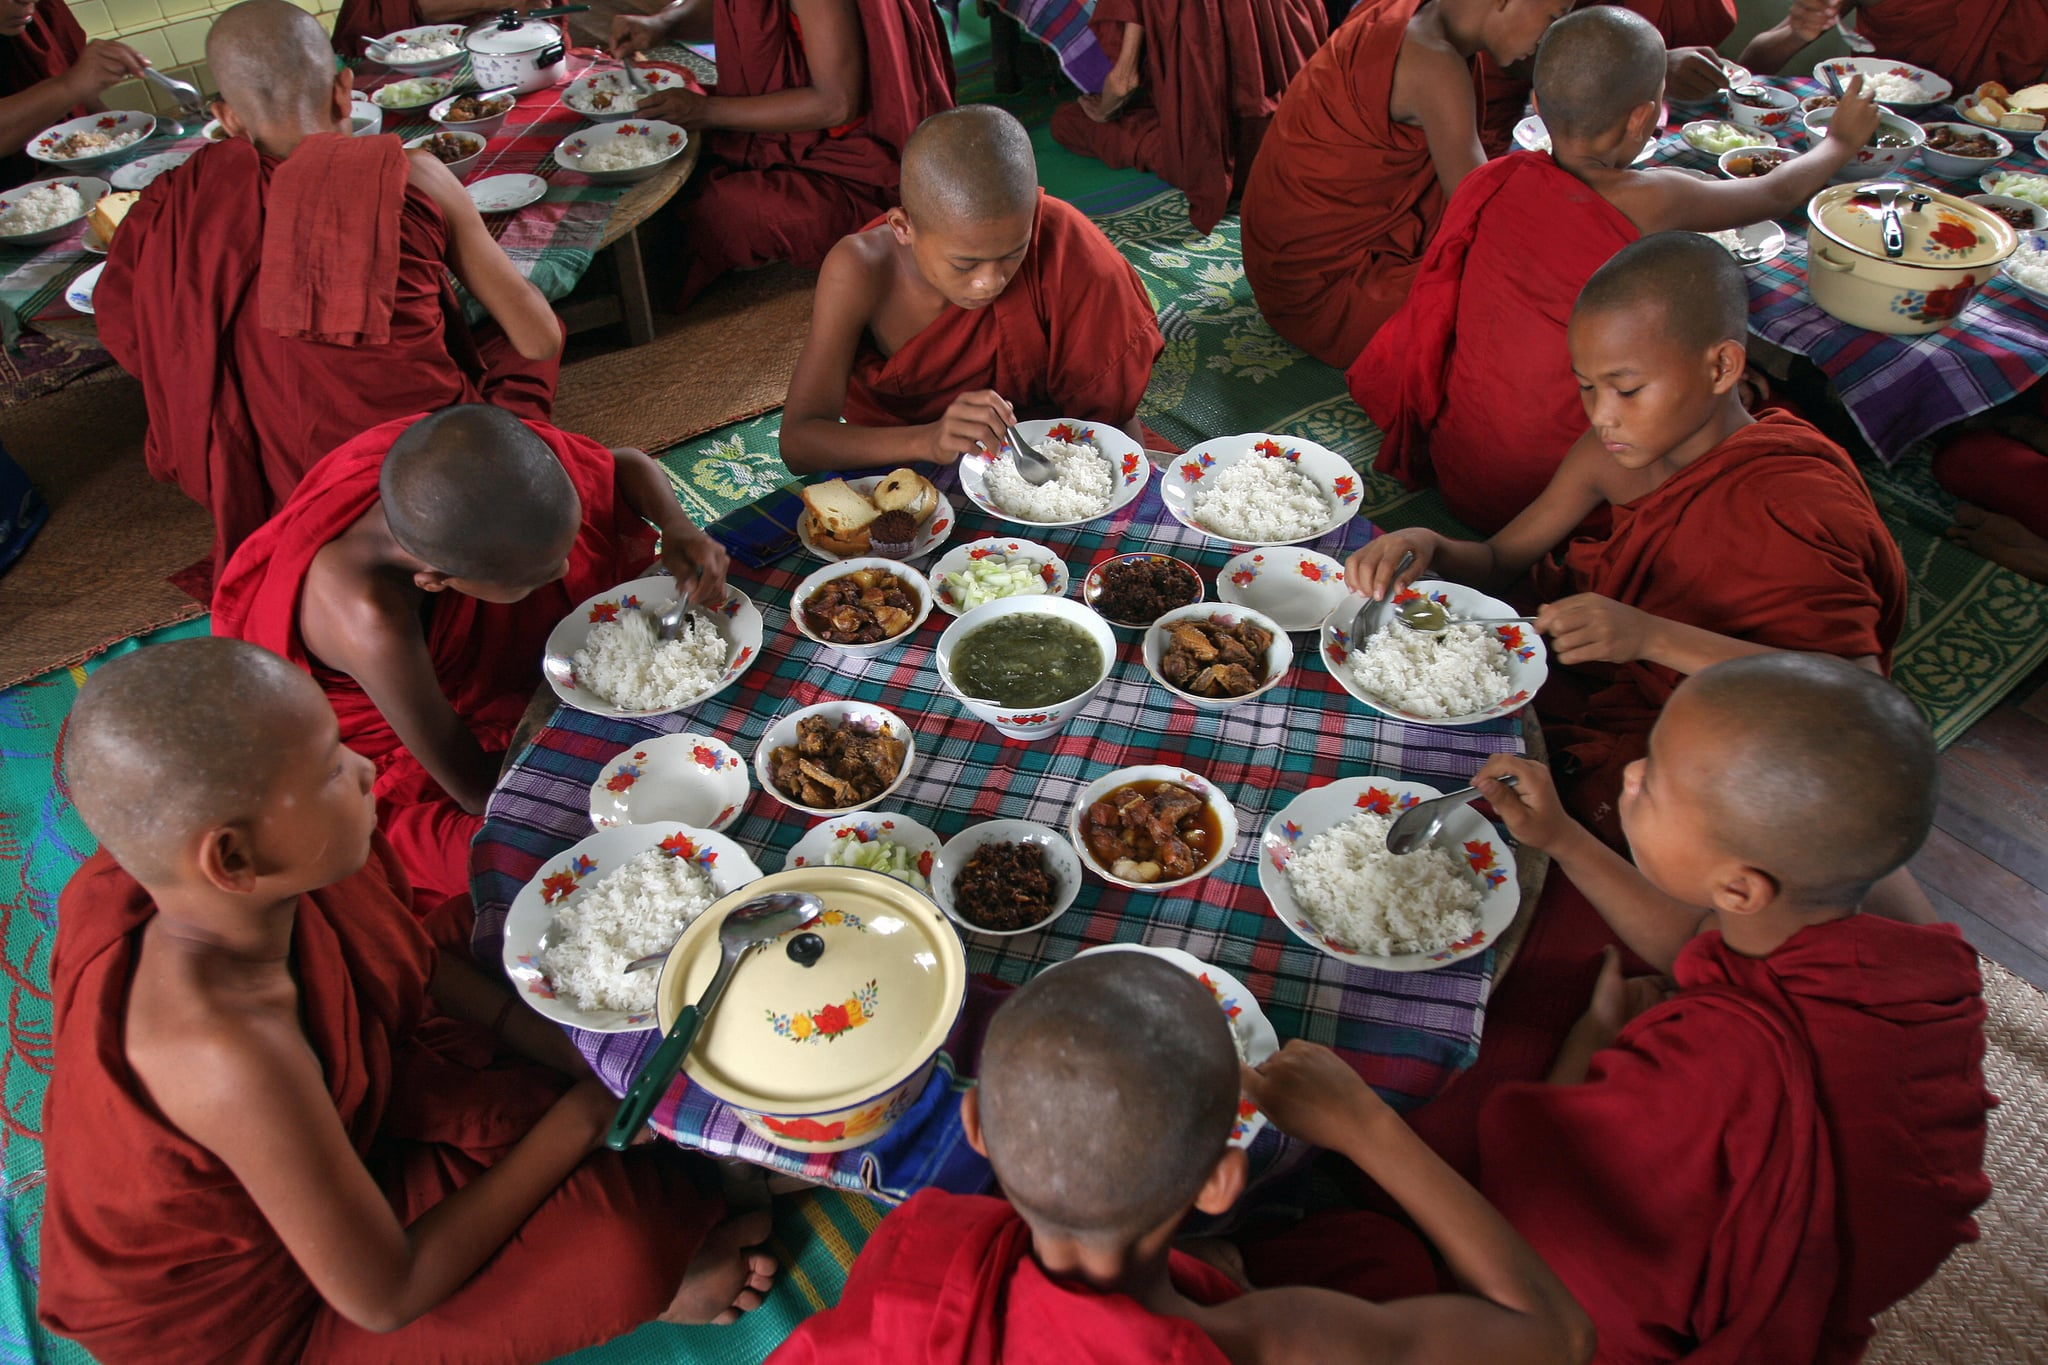 Novice Buddhist monks in Myanmar, tied for most corrupt country.